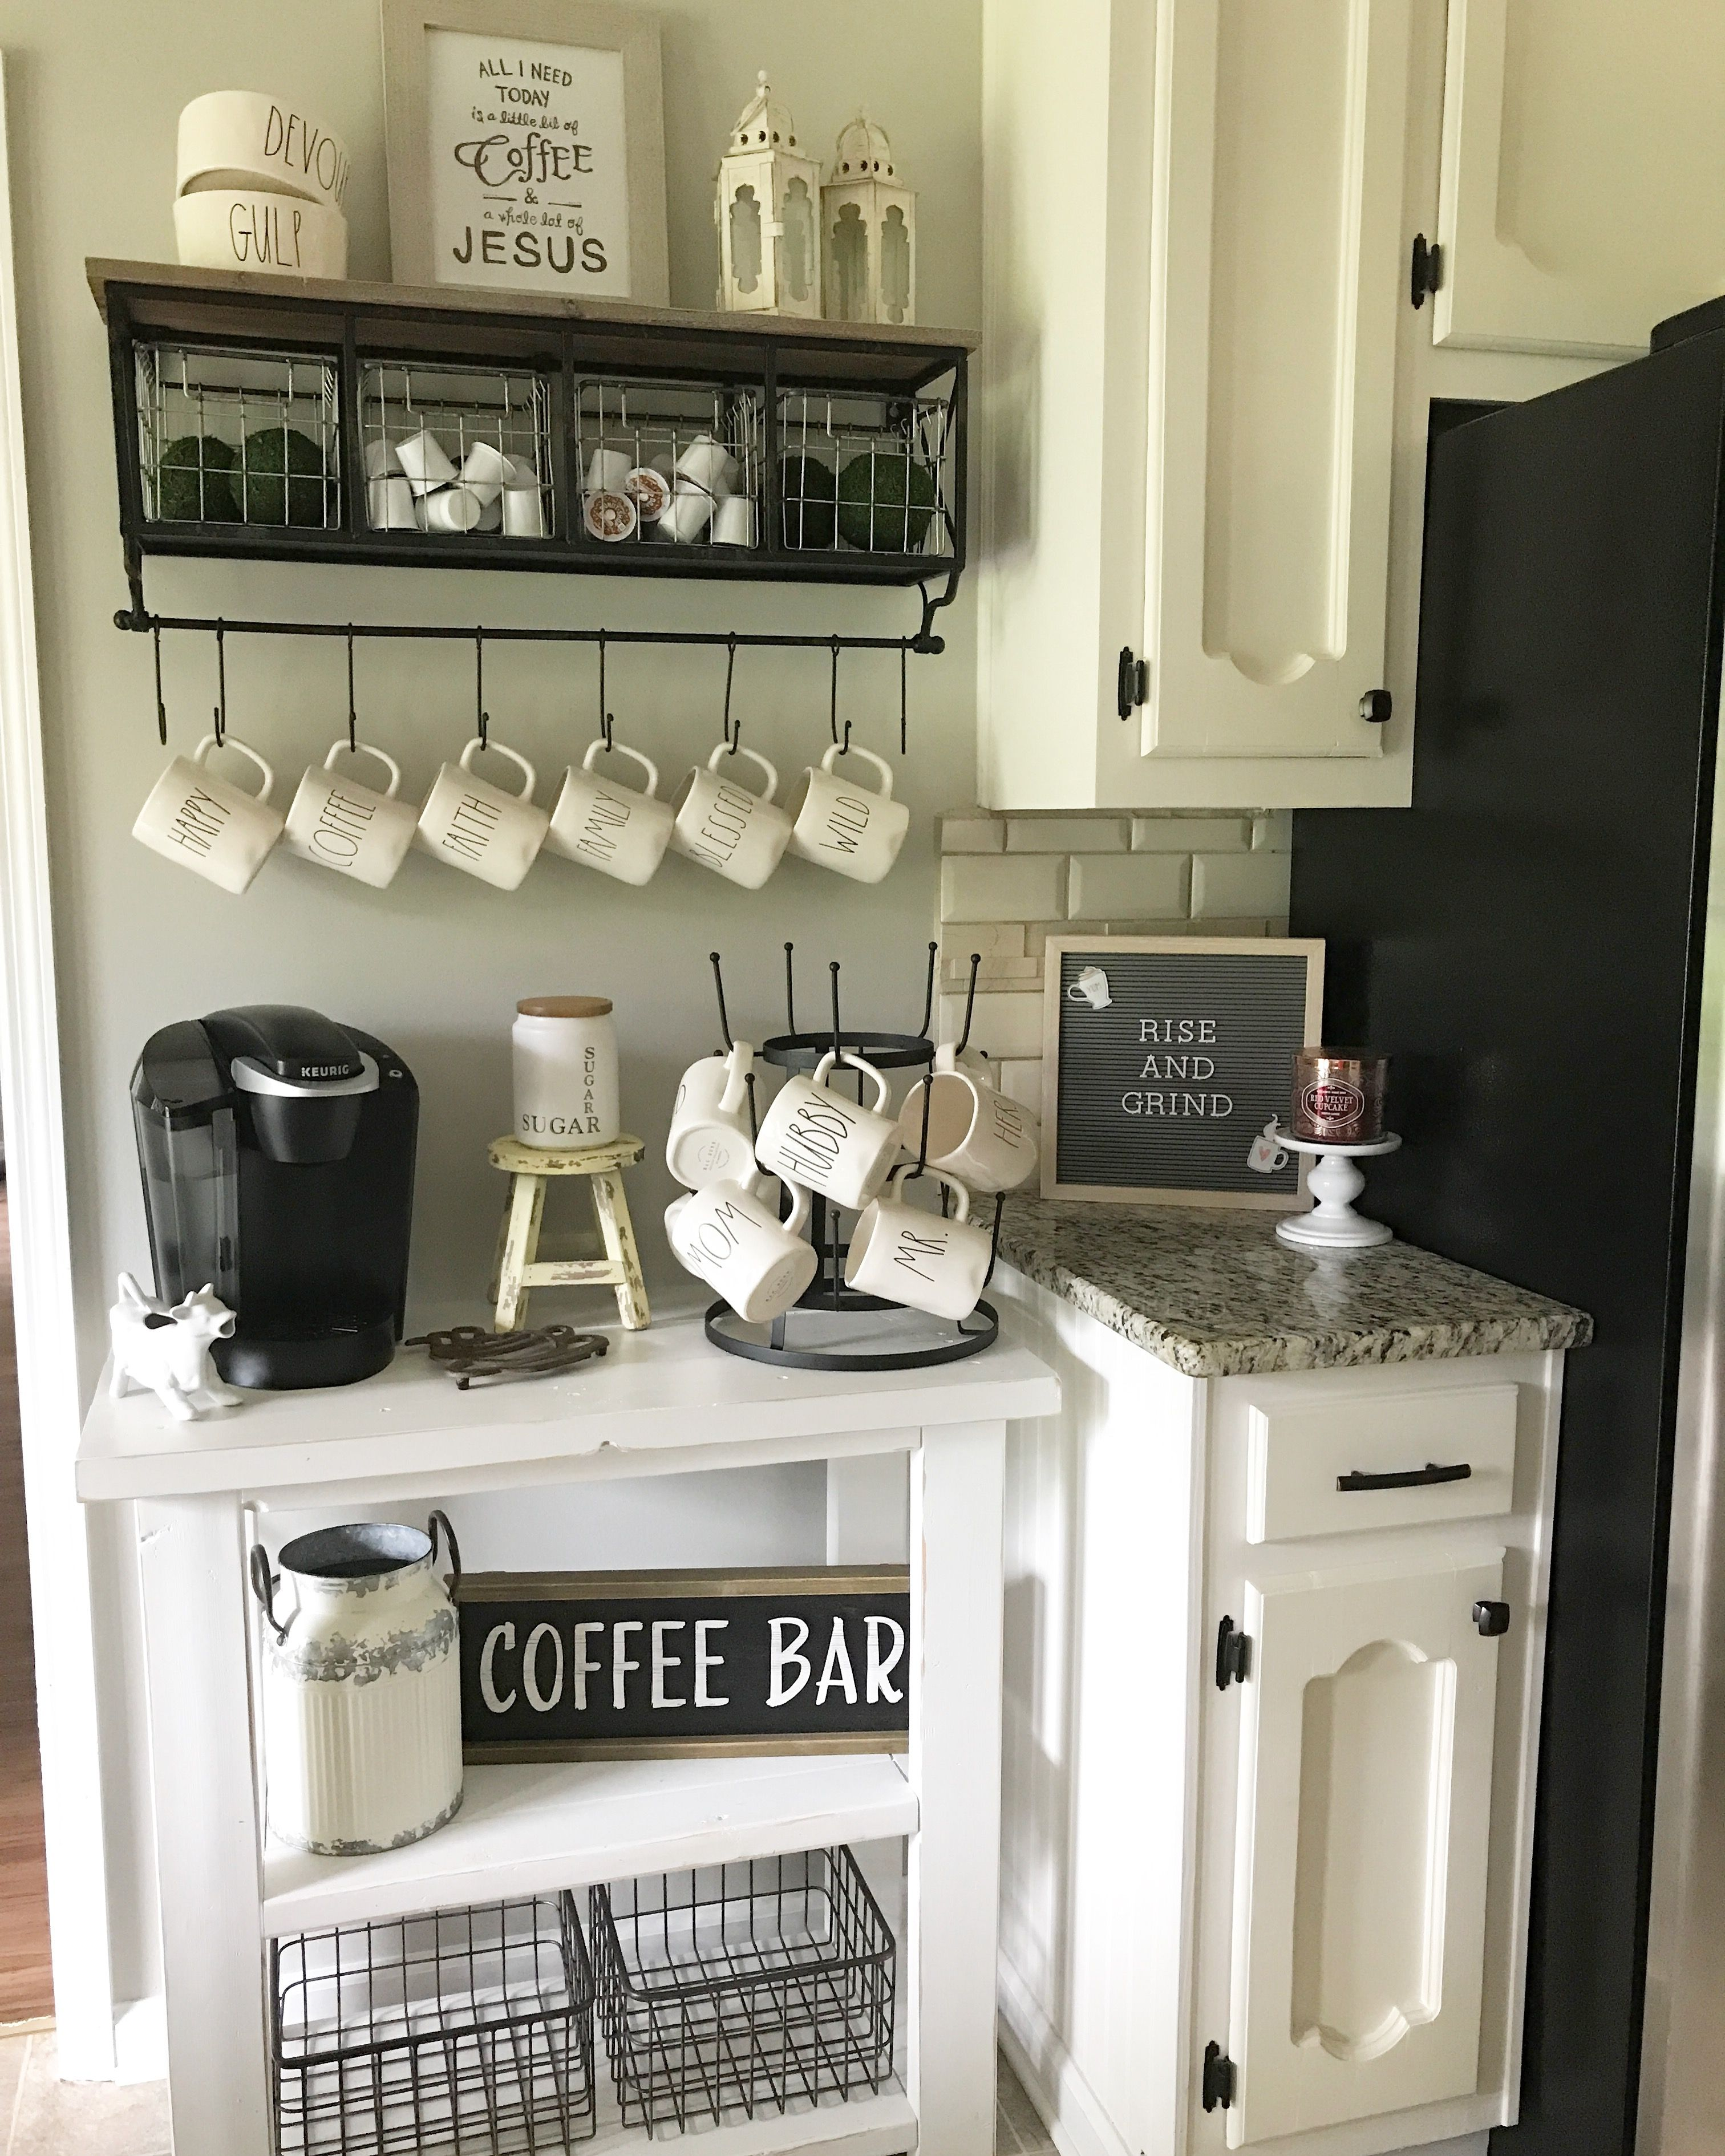 Coffee Bar Ideas For Party 25 43 Diy Coffee Bar Ideas For Your Home Stunning Pictures